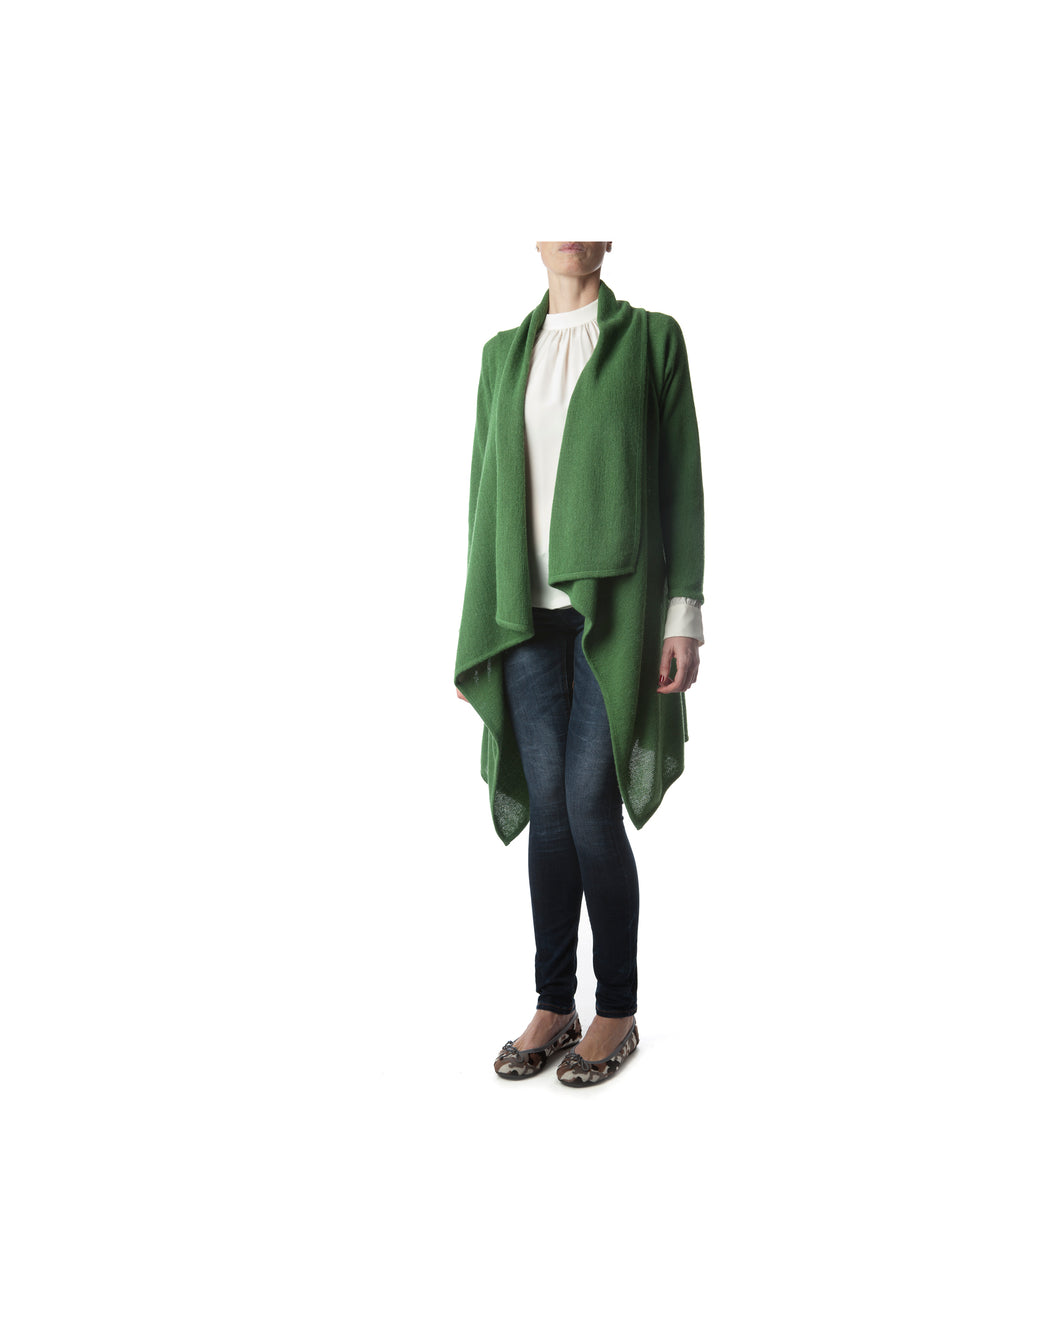 Link Cardigan-Alicia Peru Sustainable Alpaca - green color - front view